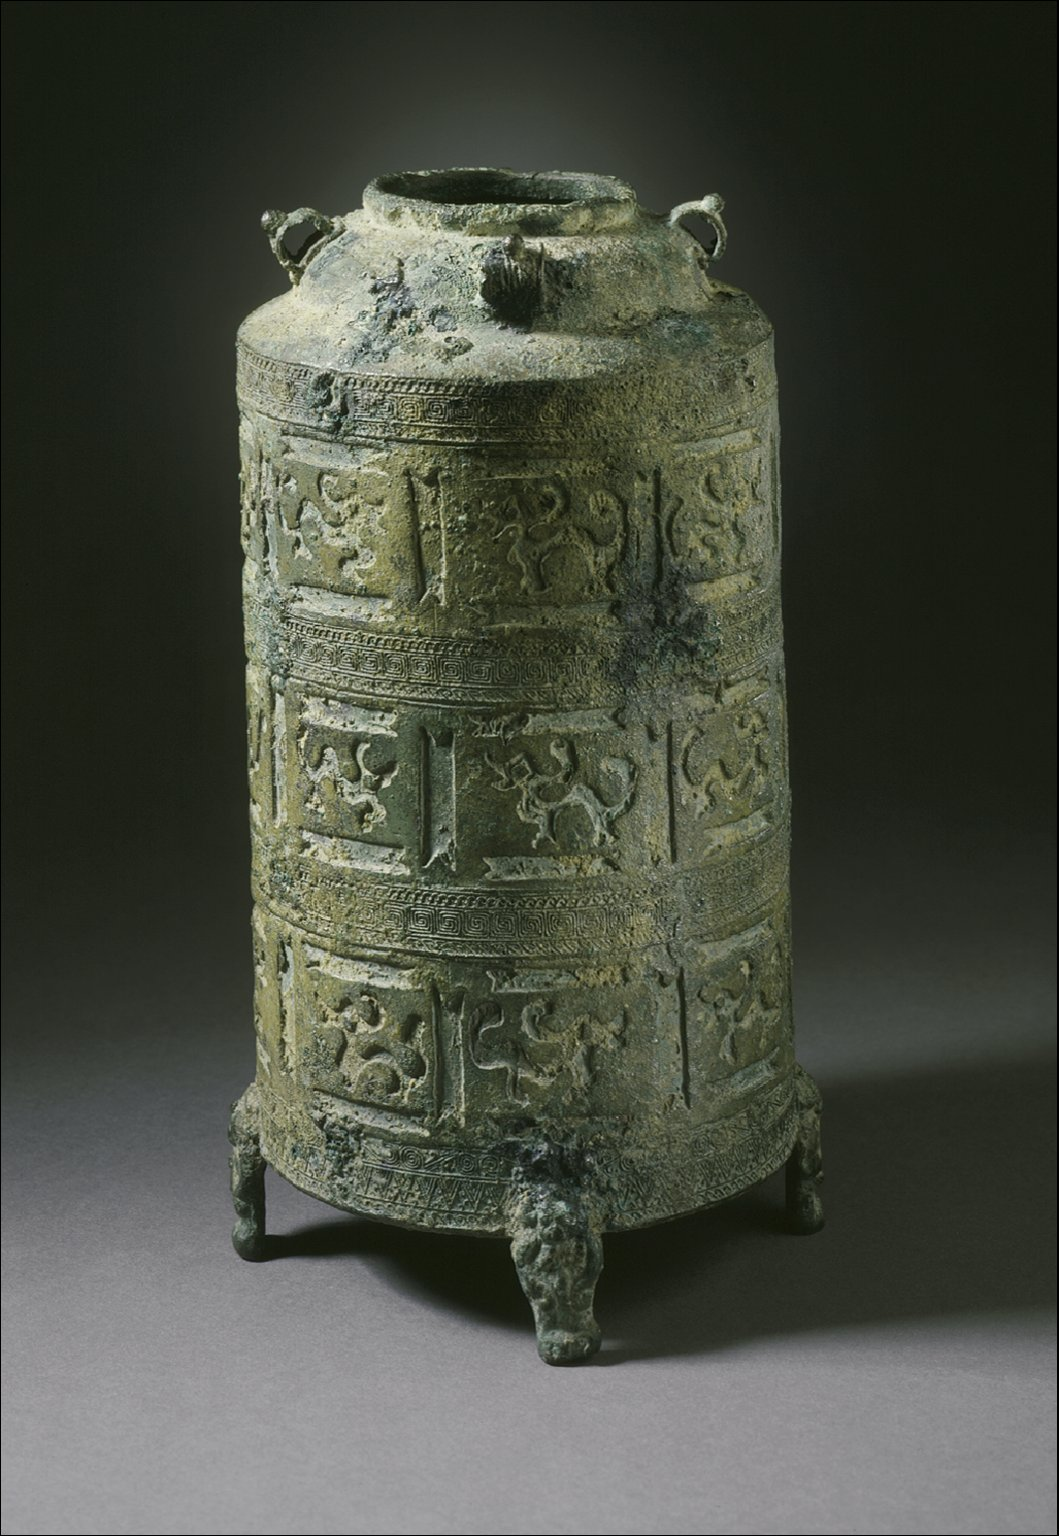 Container with Supernatural Creatures and Four Legs in the Form of Bears